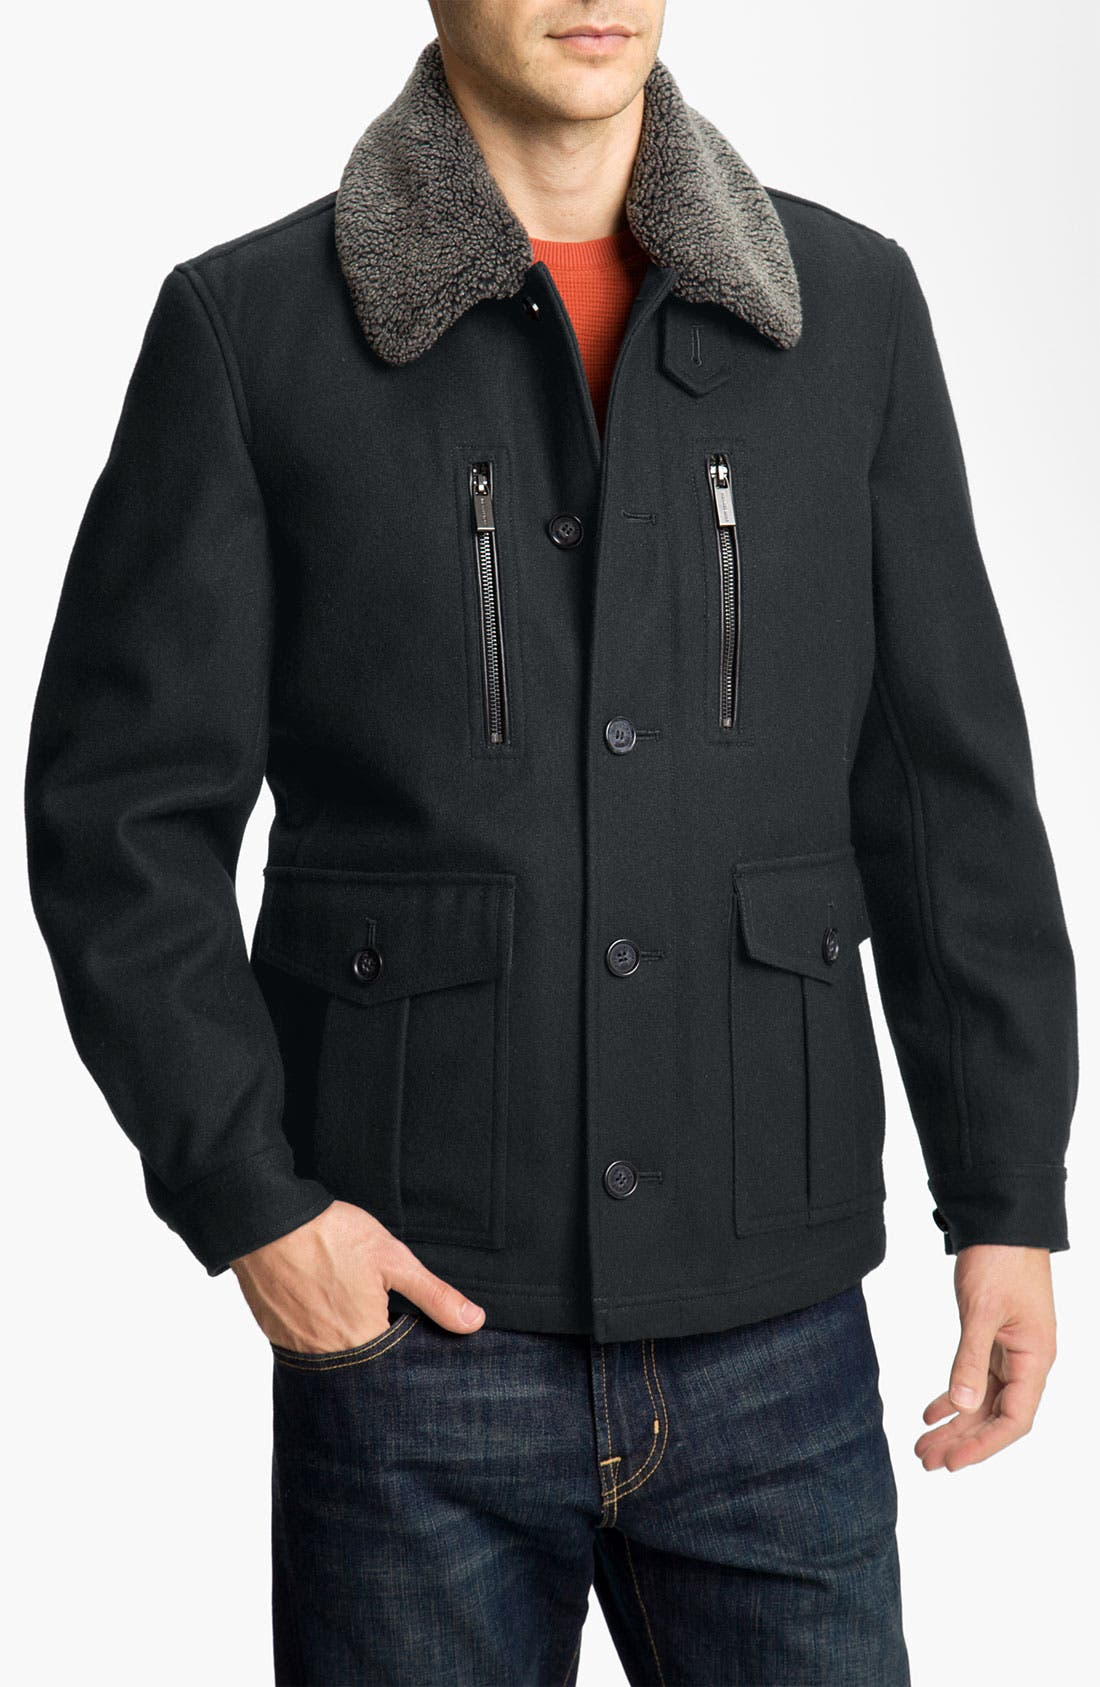 Main Image - Michael Kors Wool Blend Newsboy Jacket with Faux Shearling Trim